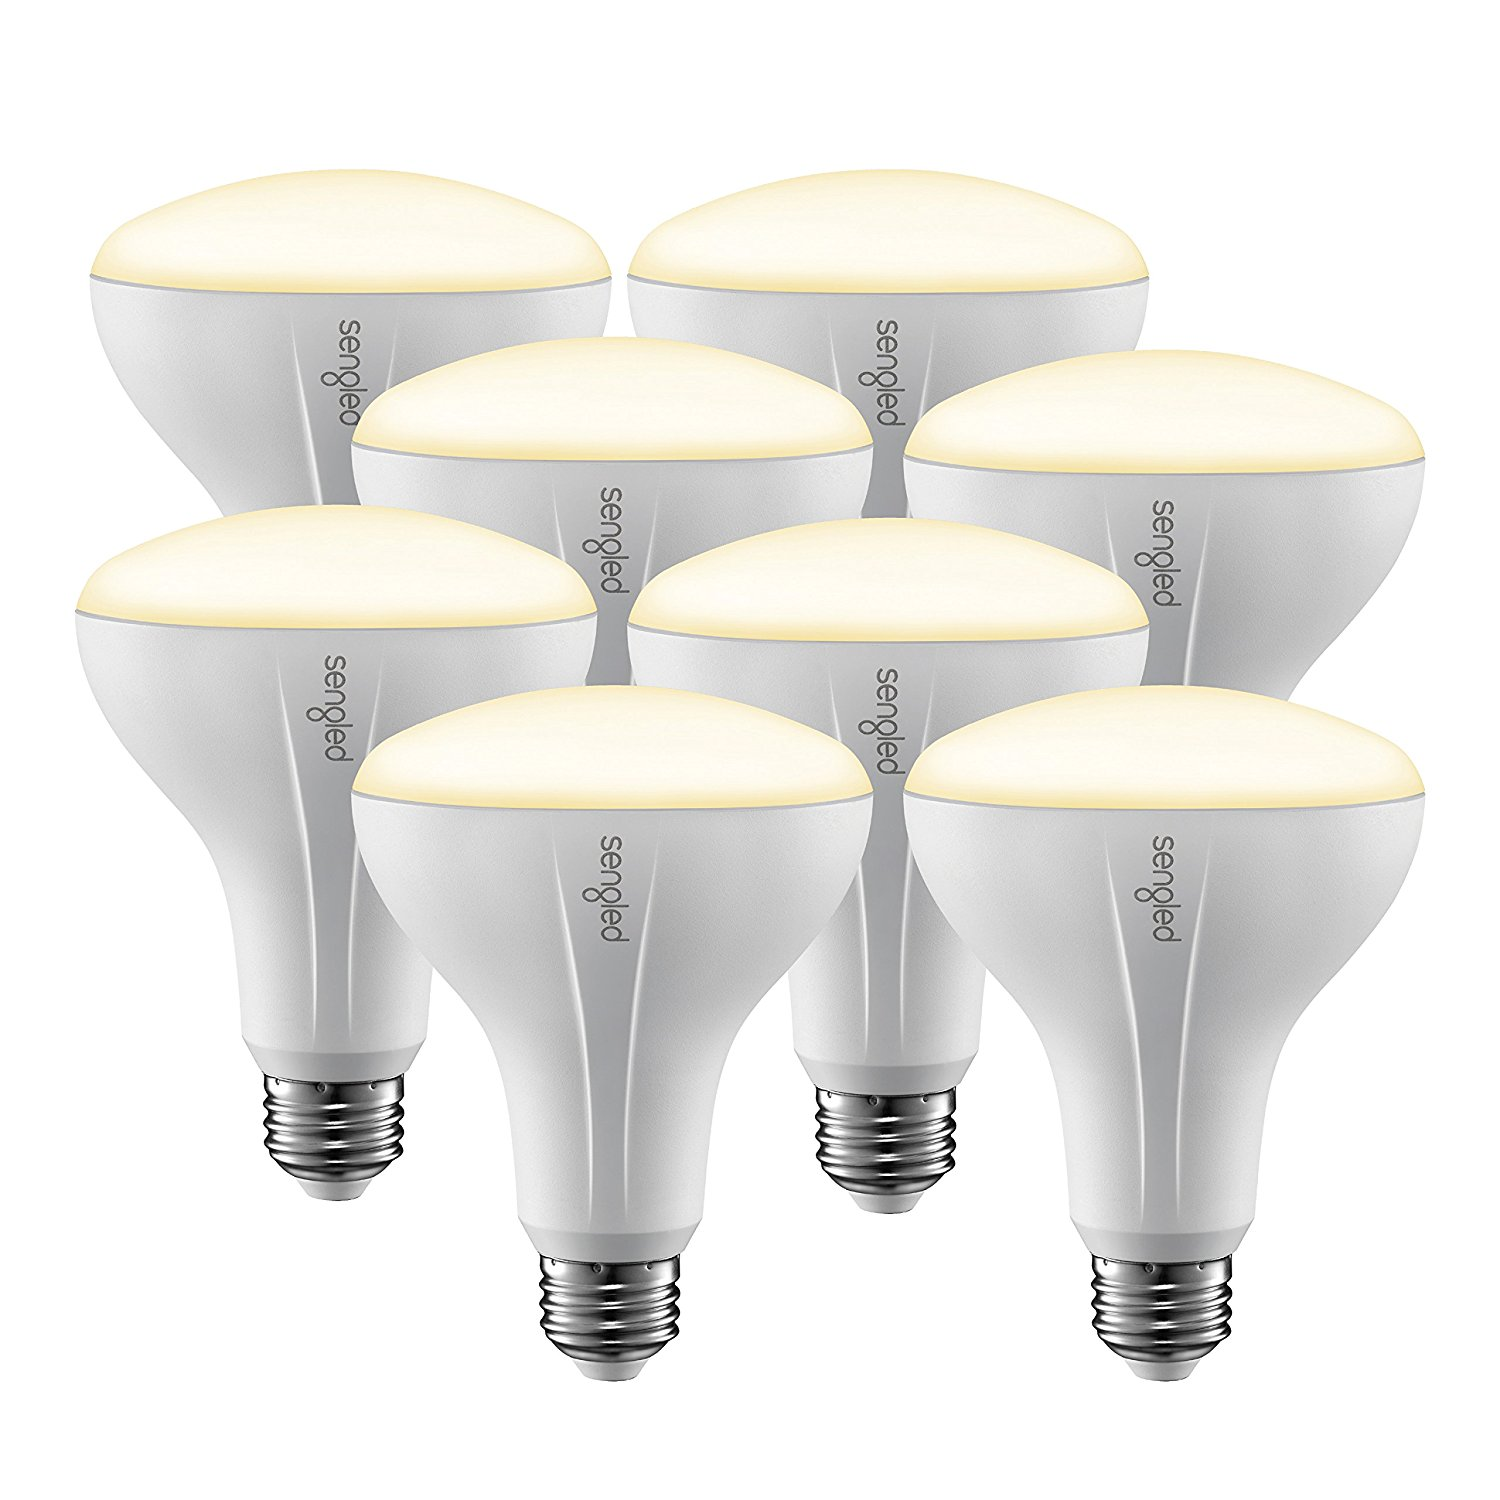 Sengled Element 8-Pack Smart Bulbs BR30 Dimmable Bulbs